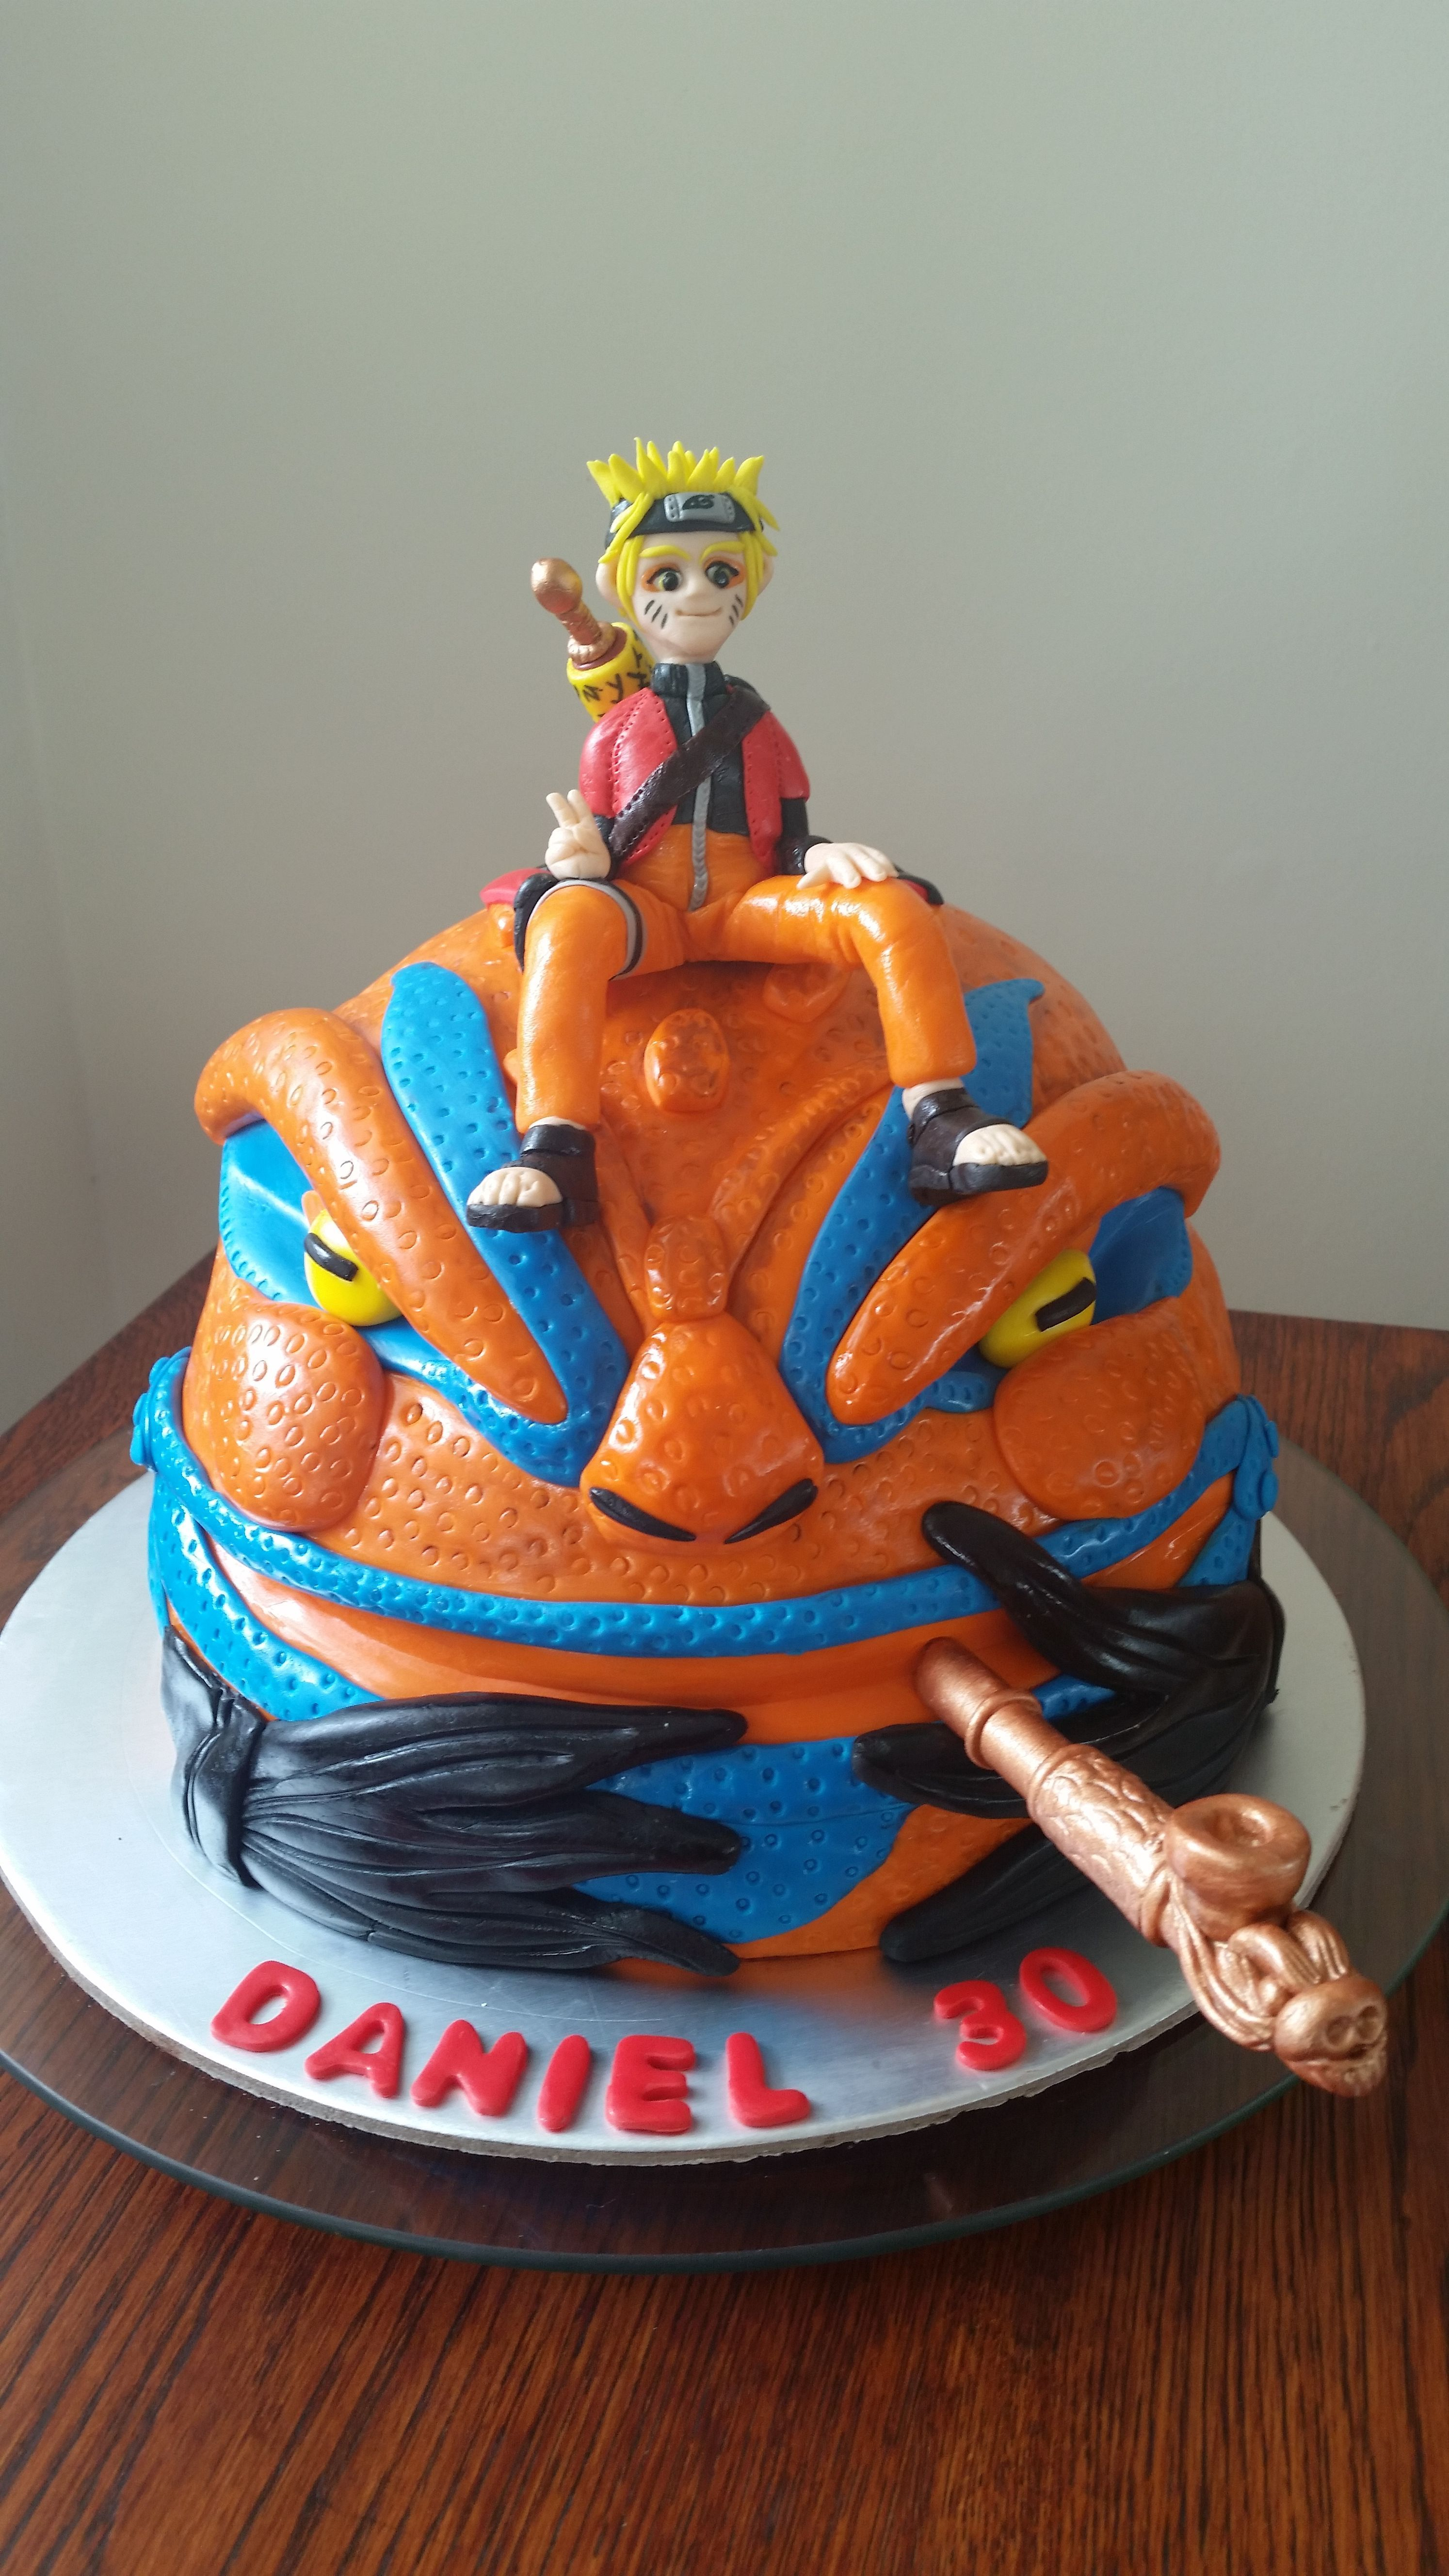 Naruto Anime Cake For Dans 30Th Anime cake, Cake, 30